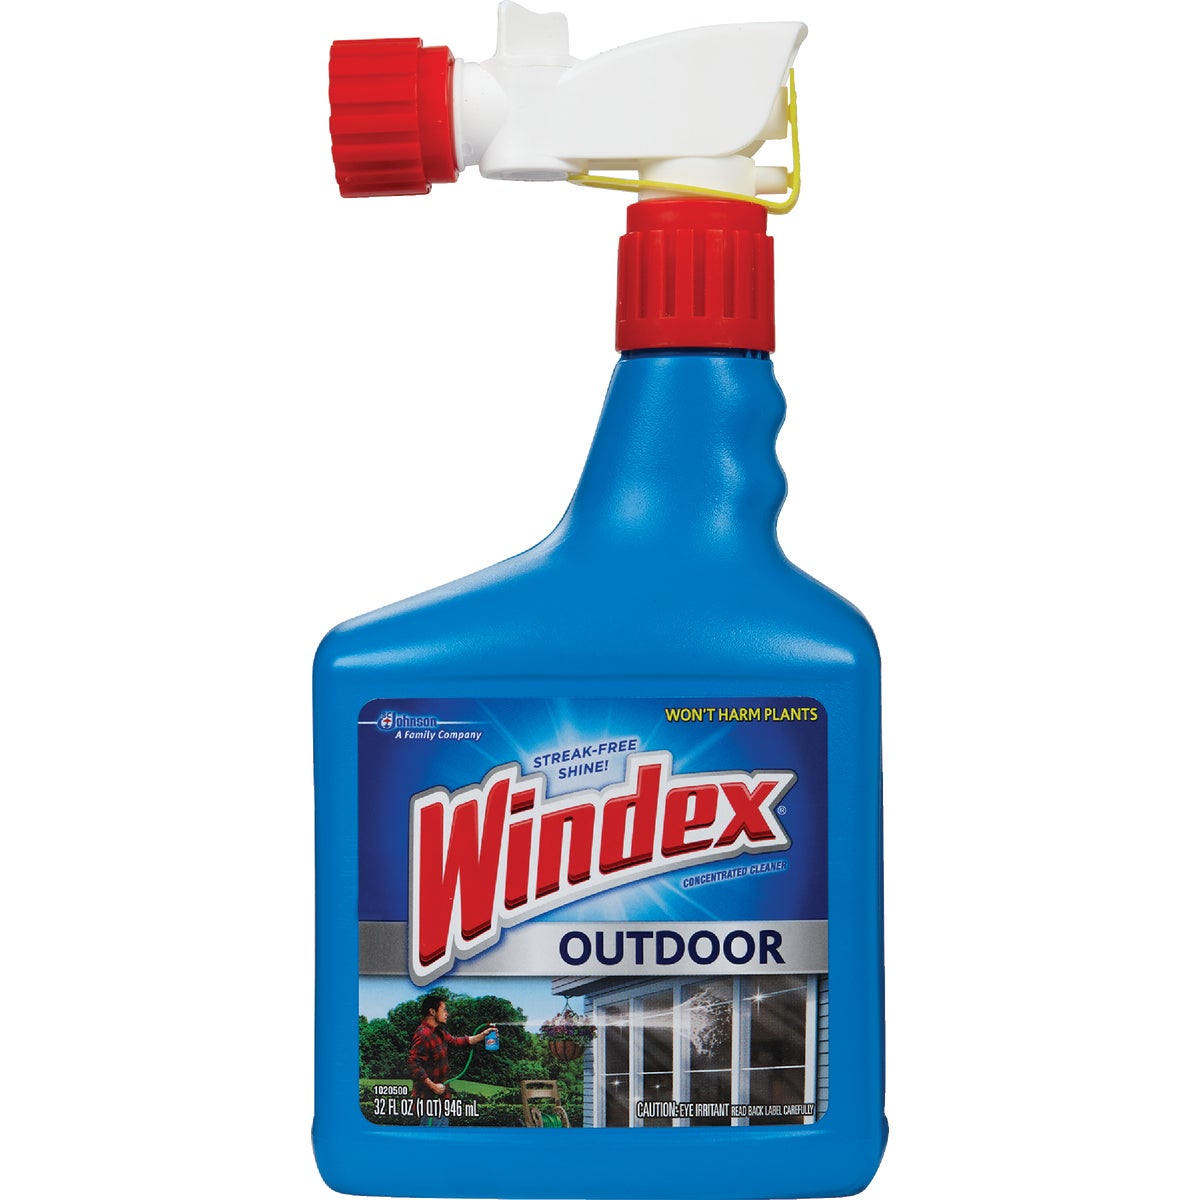 32OZ OUTDOOR WINDEX - 10122 by Sc Johnson